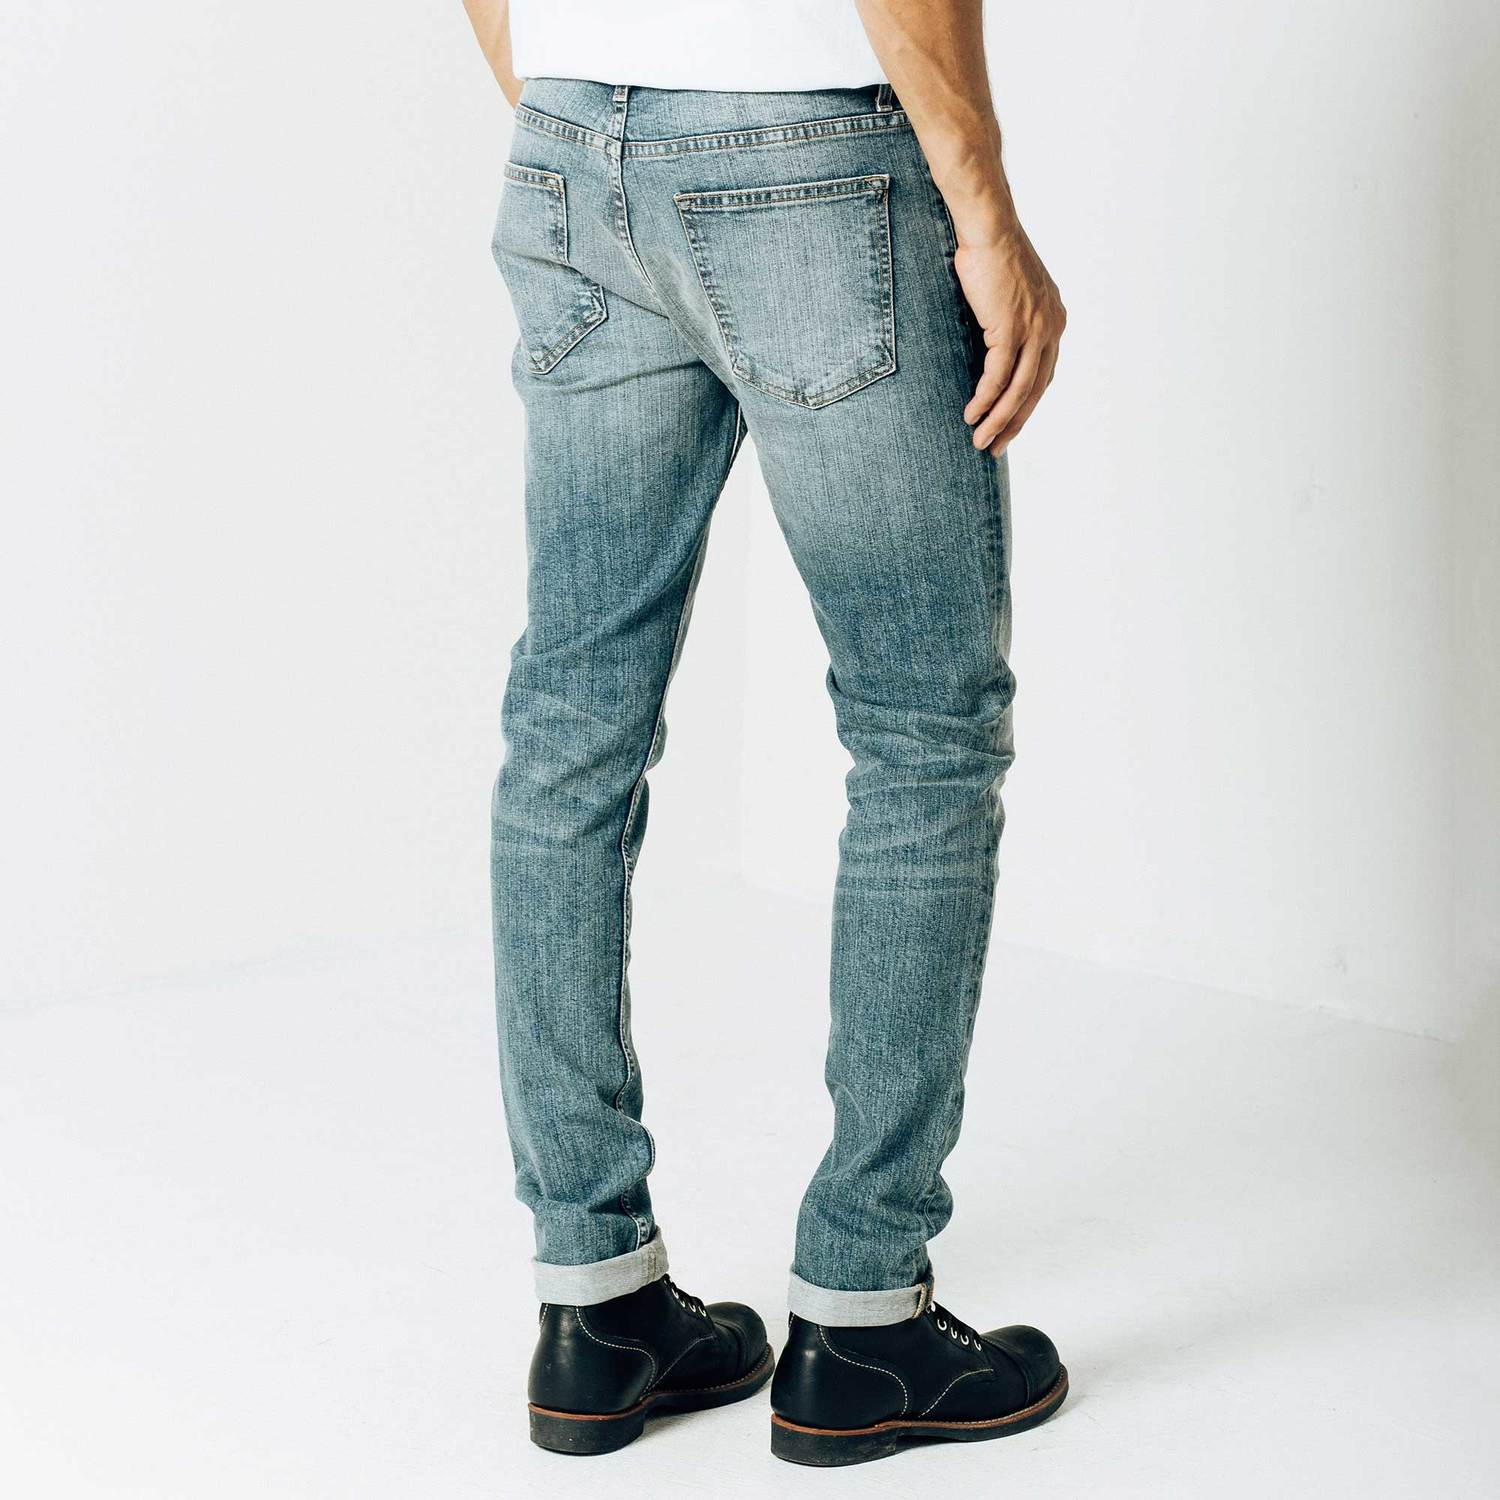 Find great deals on eBay for mens light blue skinny jeans. Shop with confidence.